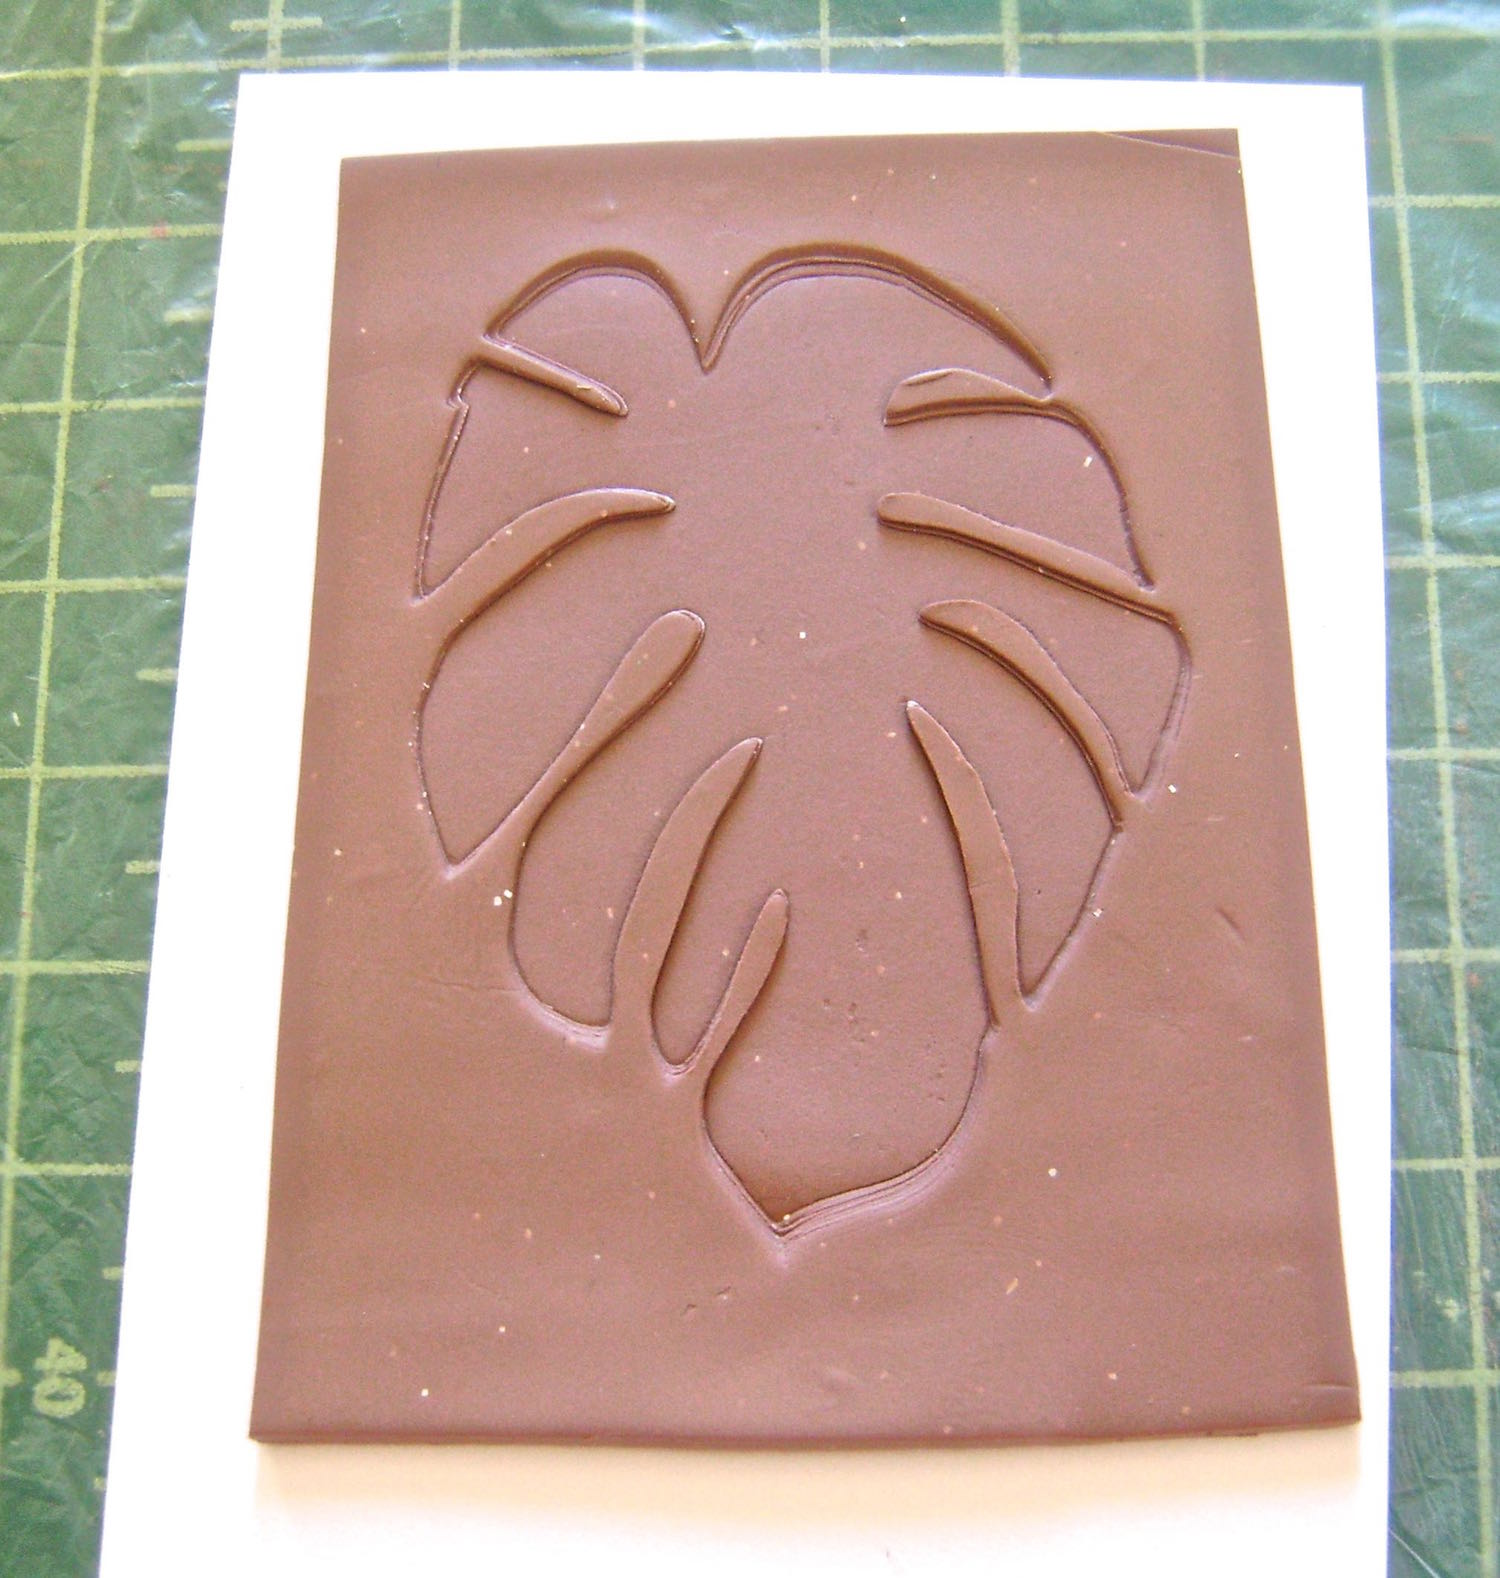 step 7 - Carefully remove the card stock from the clay.  Trim the texture sheet leaving a border all around the image for easy handling.  Bake the clay on pieces of card stock or cardboard at 275 degrees for 30 minutes.  Allow them to cool completely.